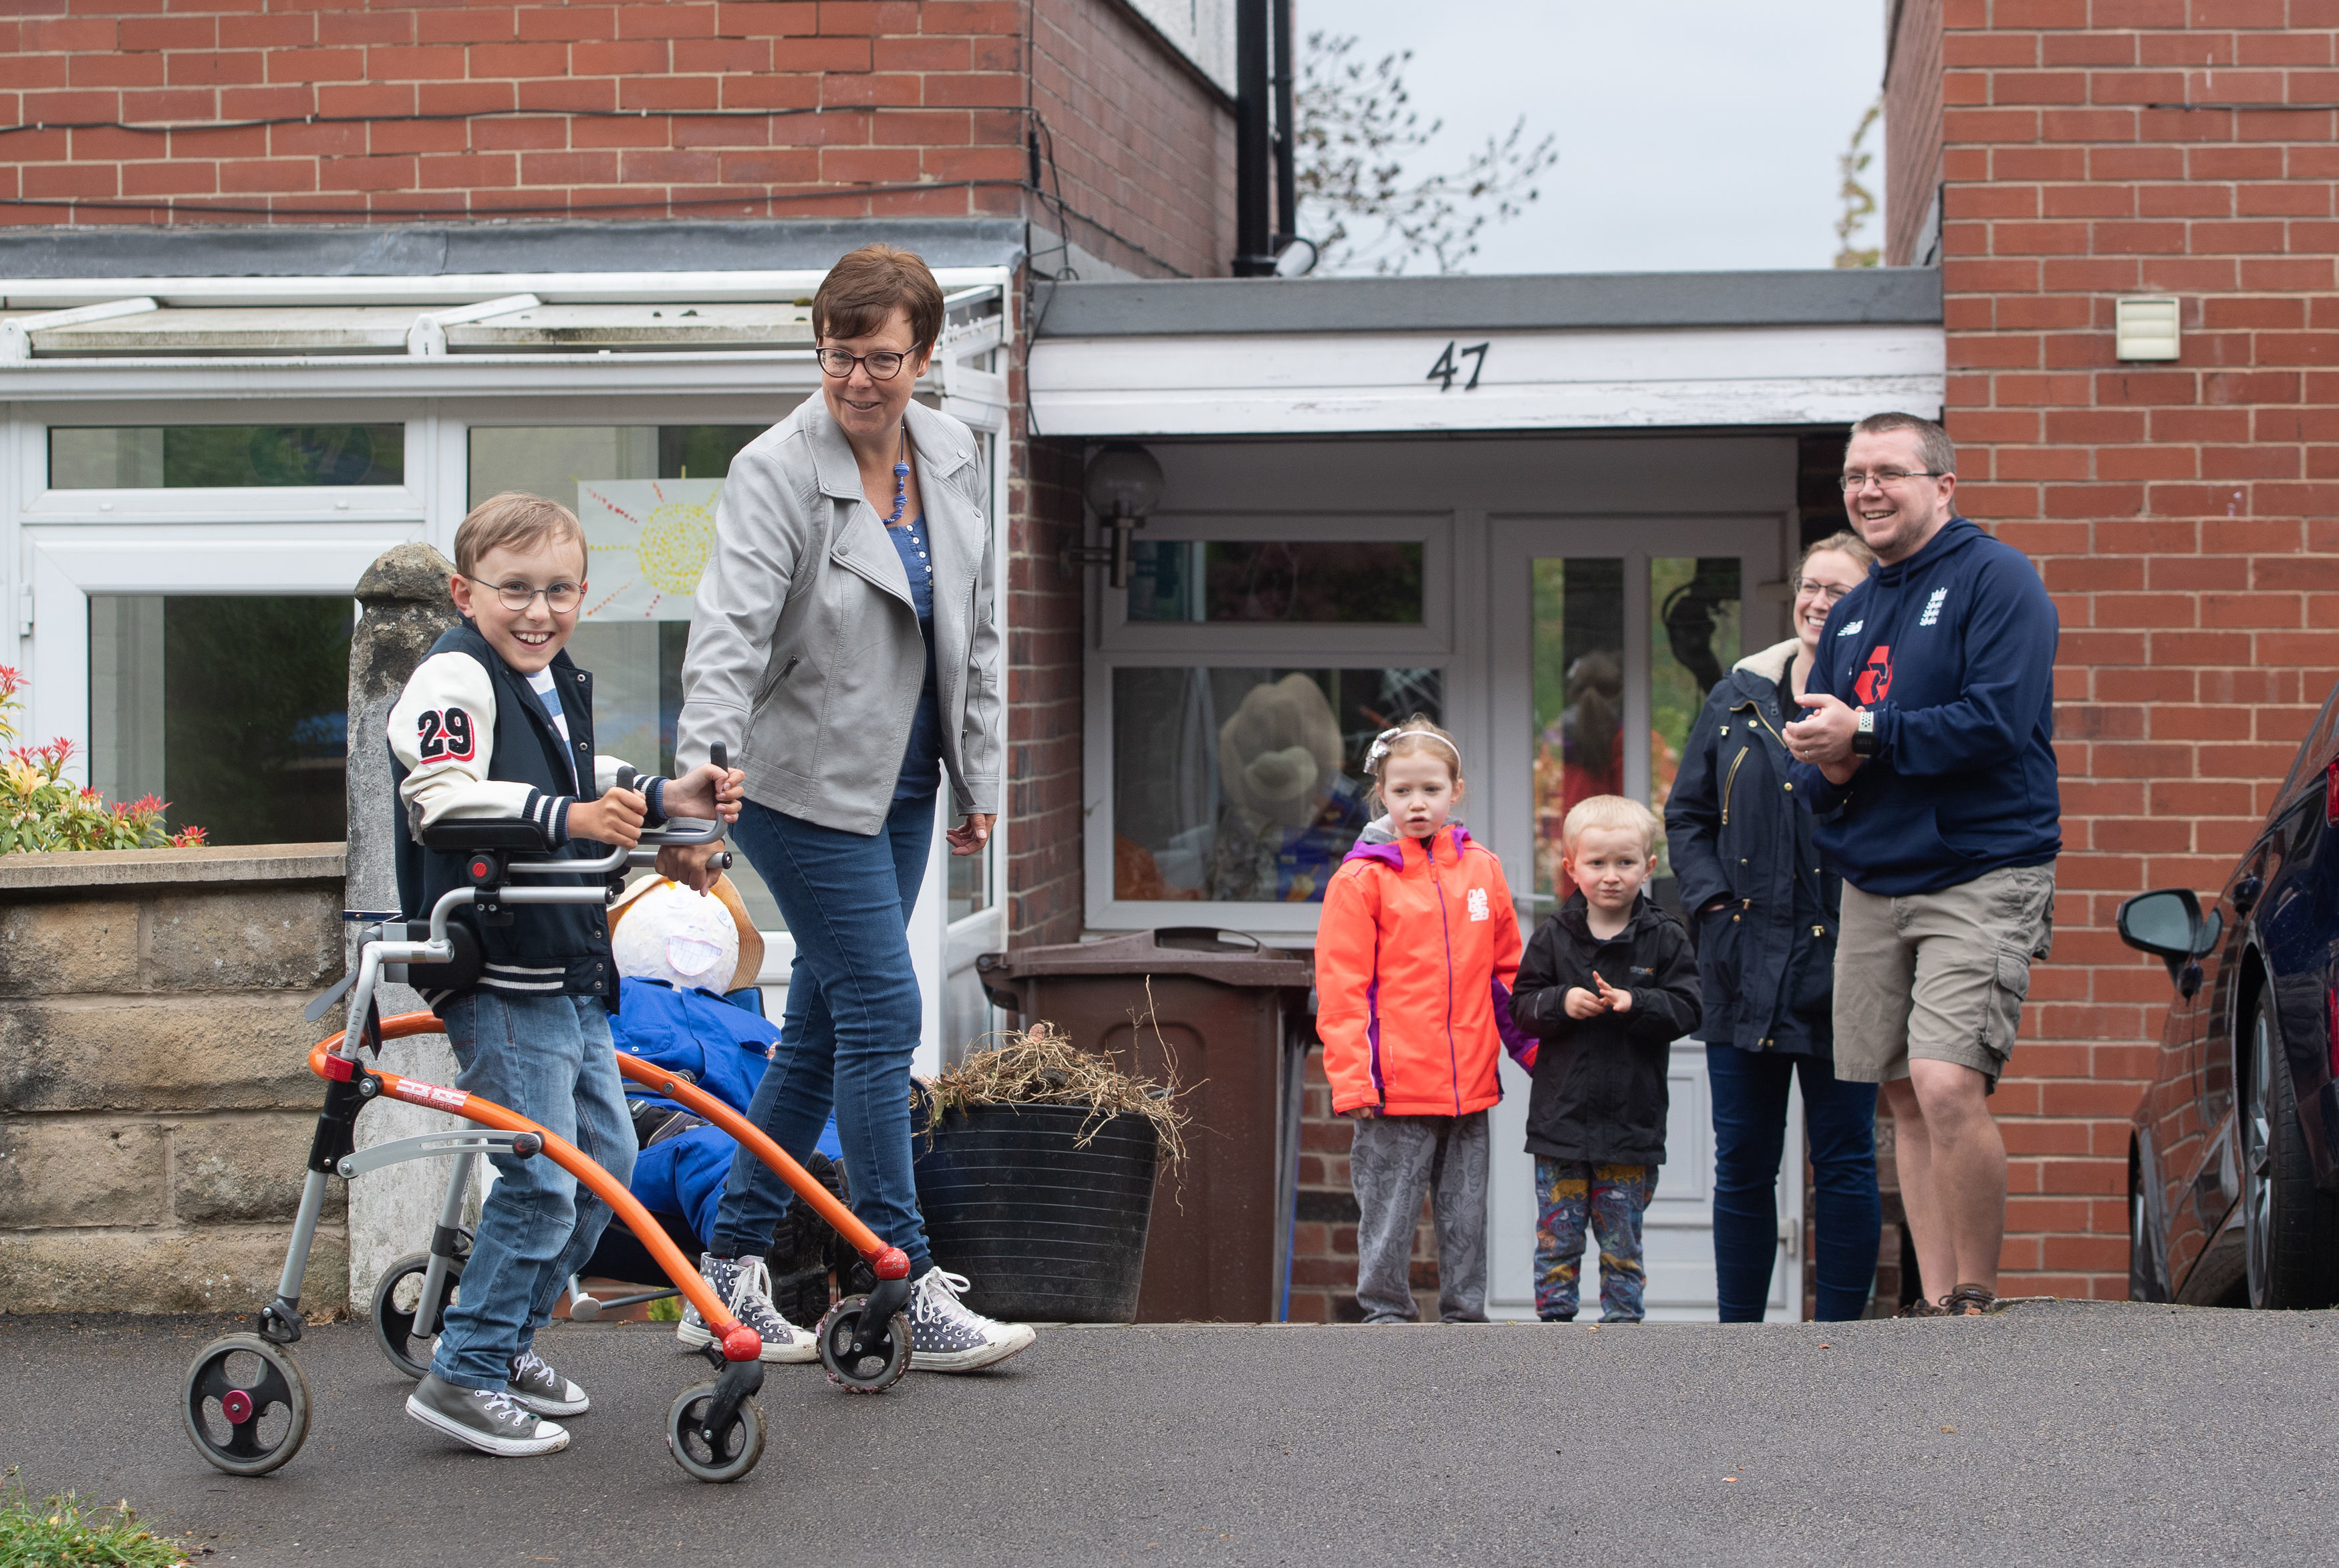 """File photo dated 29/04/20 of Tobias Weller, who has cerebral palsy and autism, being cheered on by neighbours as he walks along the street outside his home in Sheffield, South Yorkshire. Nine-year-old Tobias, who cannot stand or walk unaided, is gearing up for the final leg of what he has called his """"ginormous challenge"""" to walk a marathon using his walker during the lockdown."""